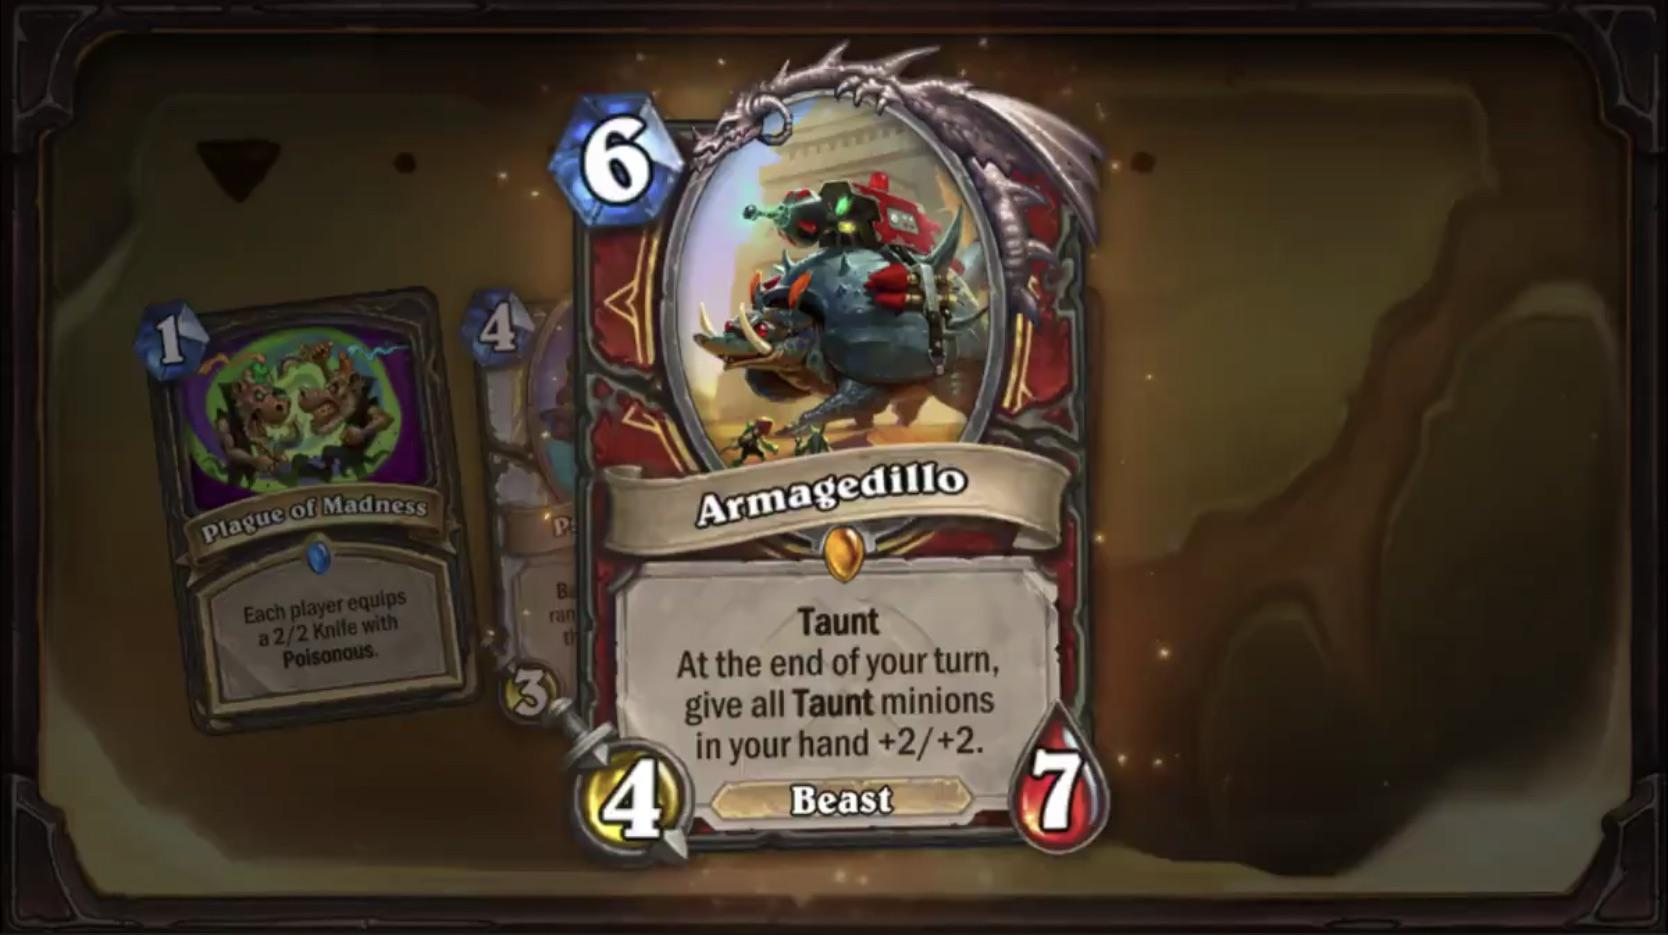 Hearthstone: Saviors of Uldum: New Warrior Legendary, Armagedillo revealed